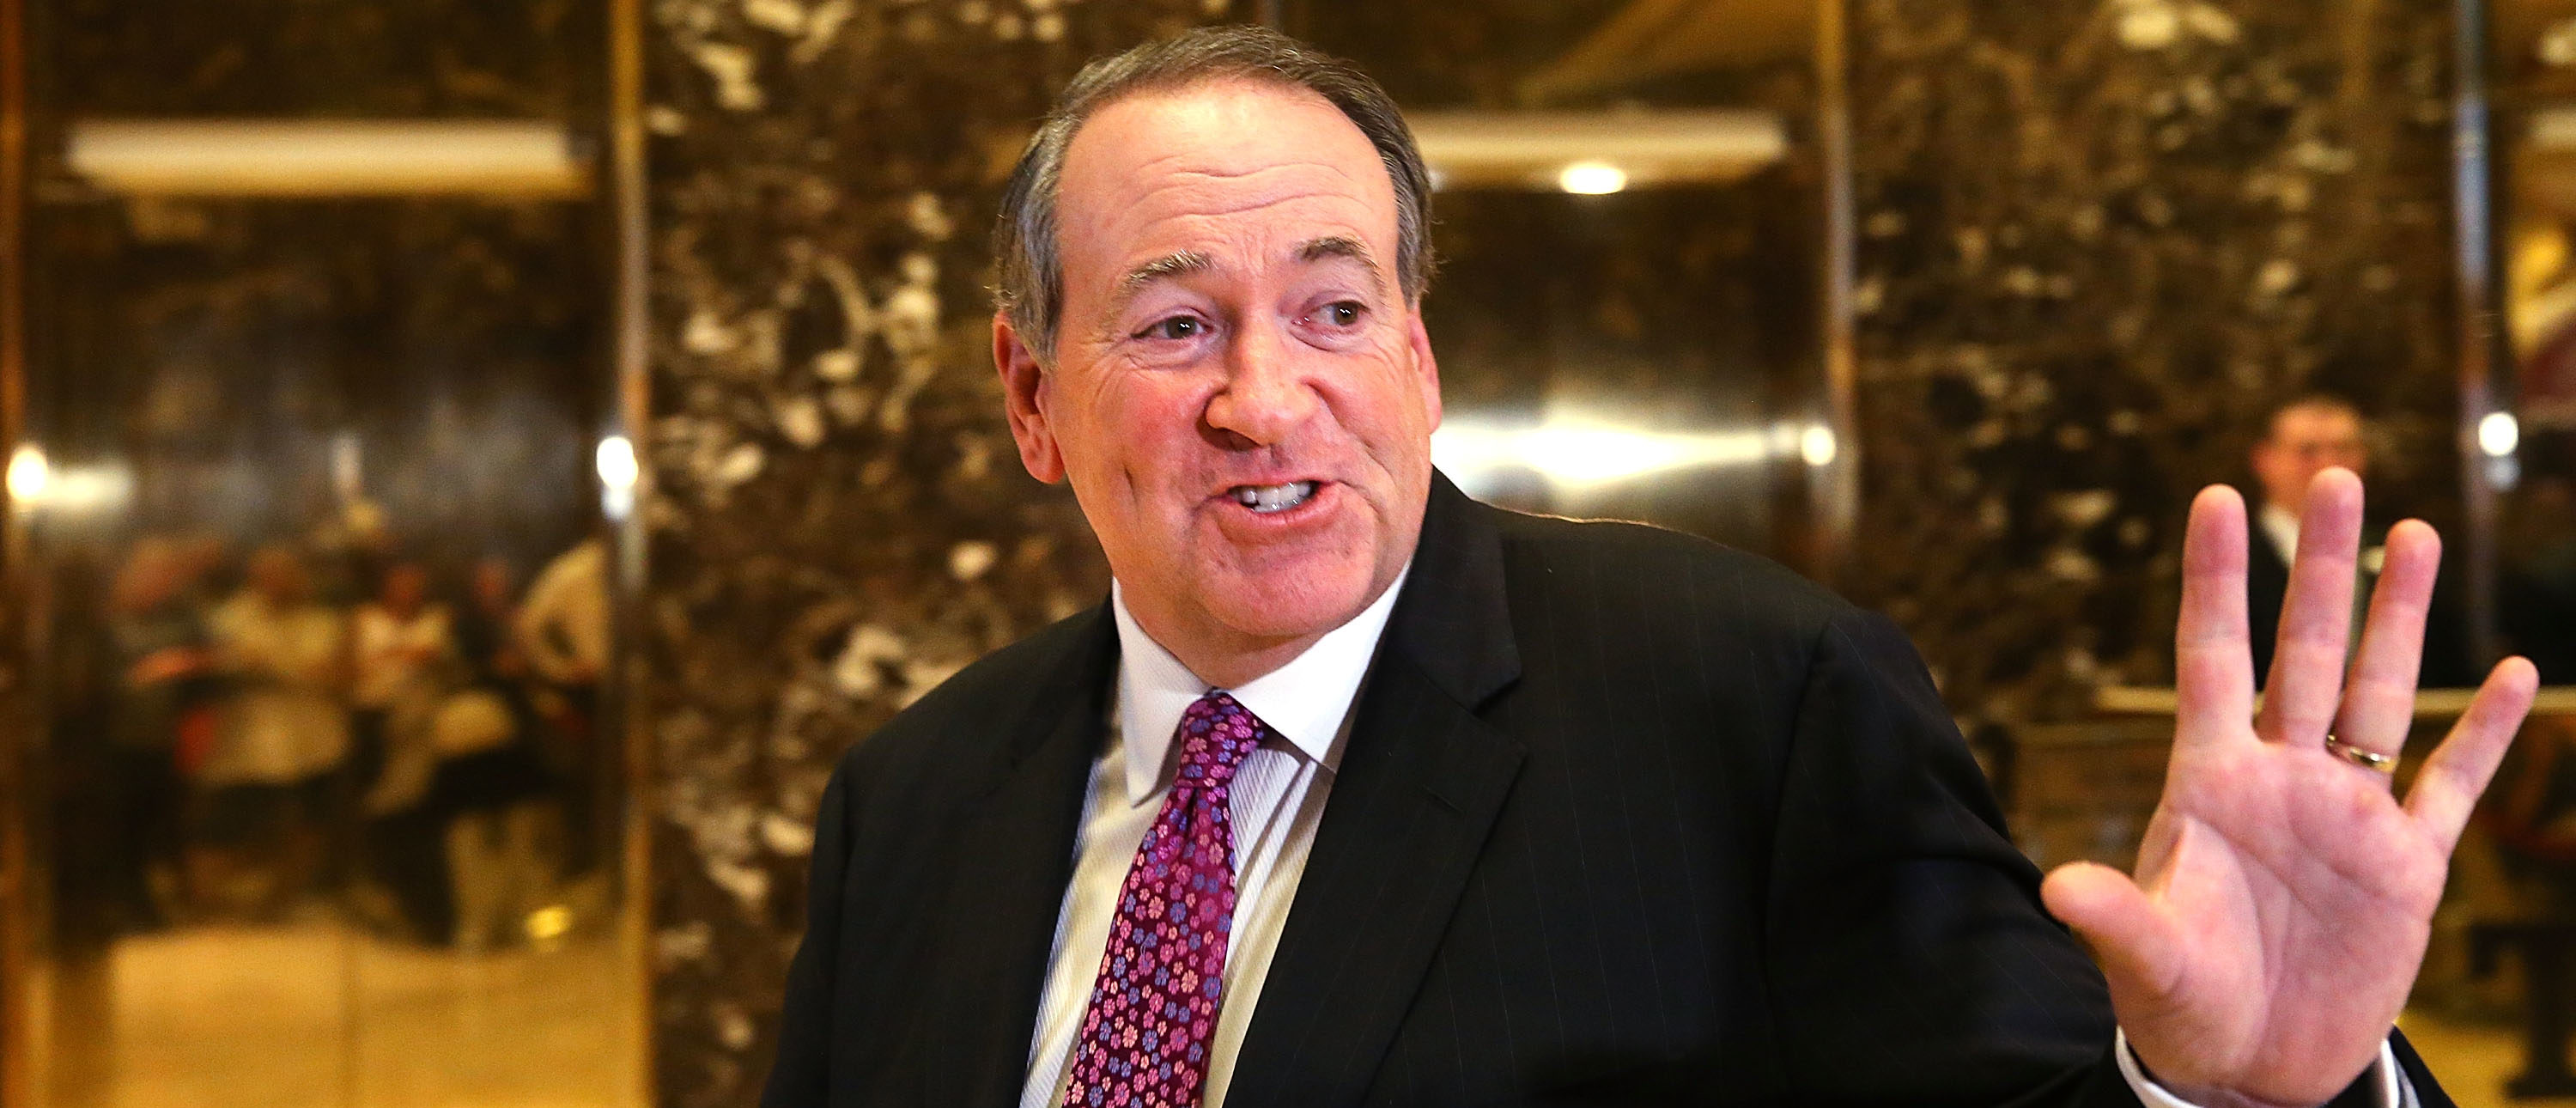 Mike Huckabee Fires Back Against Racism Allegations After Pelosi Tweet — 'MS-13 Is Not A Race'